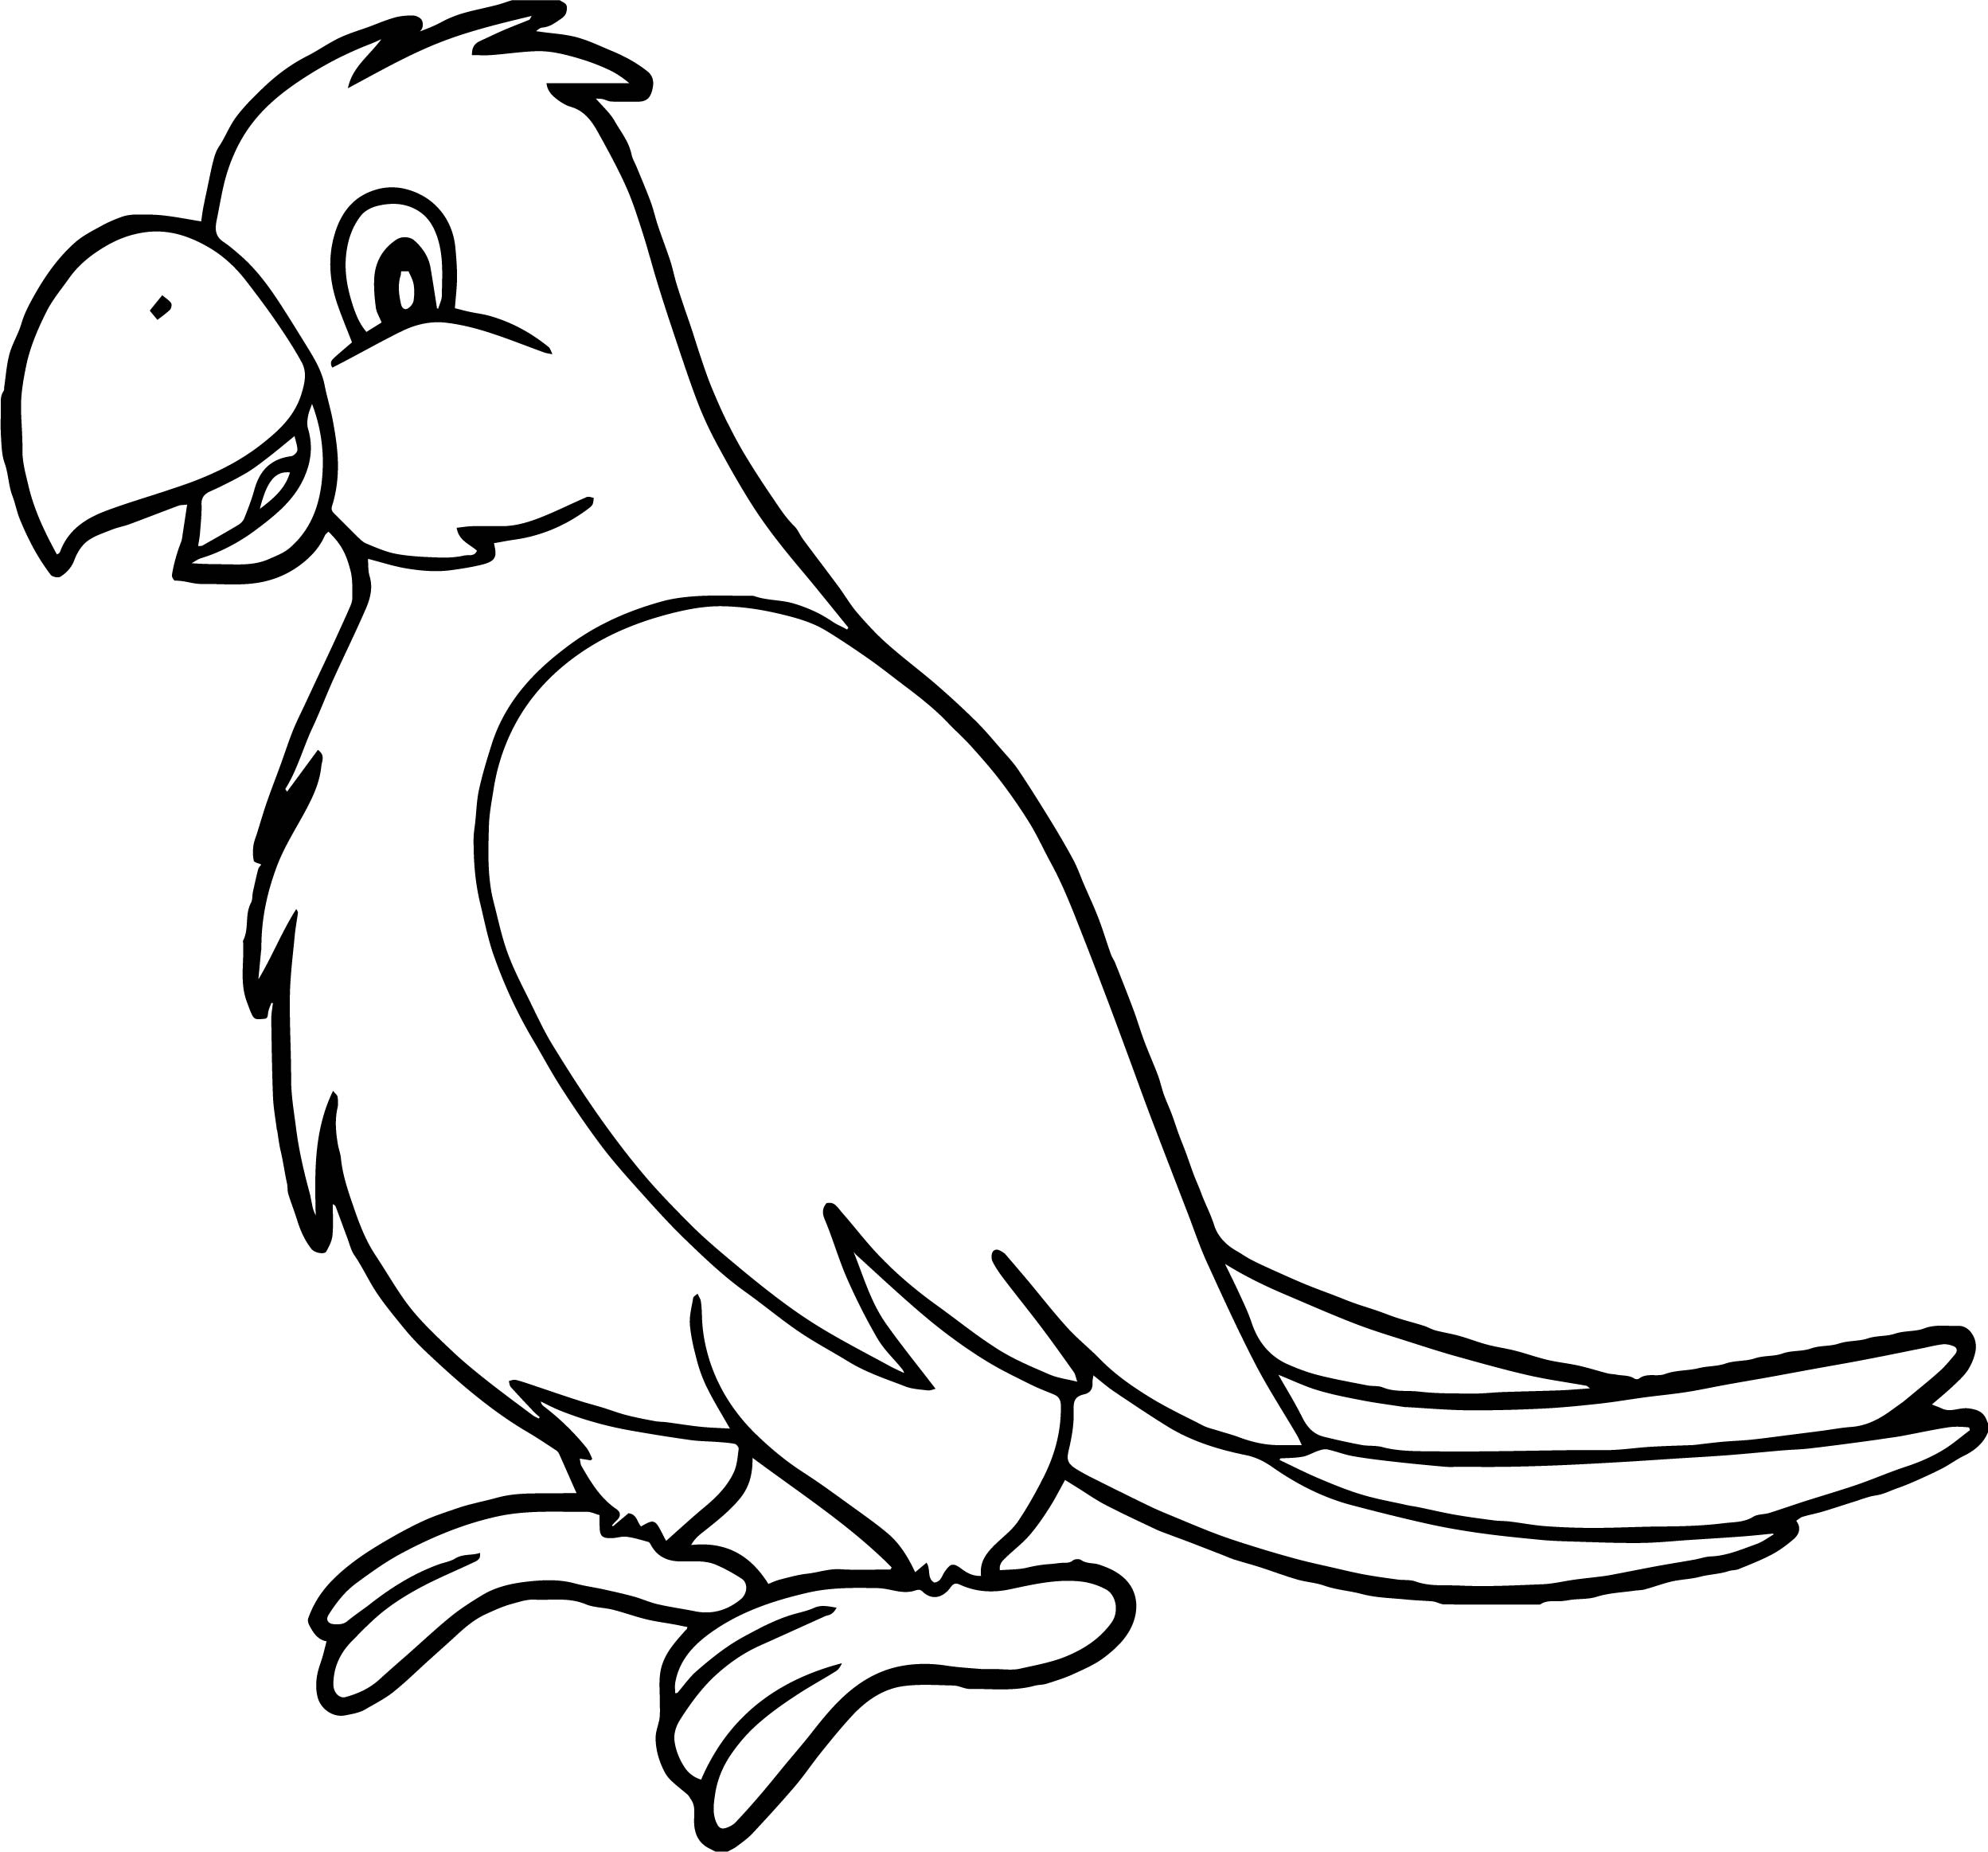 King Parrot coloring #19, Download drawings